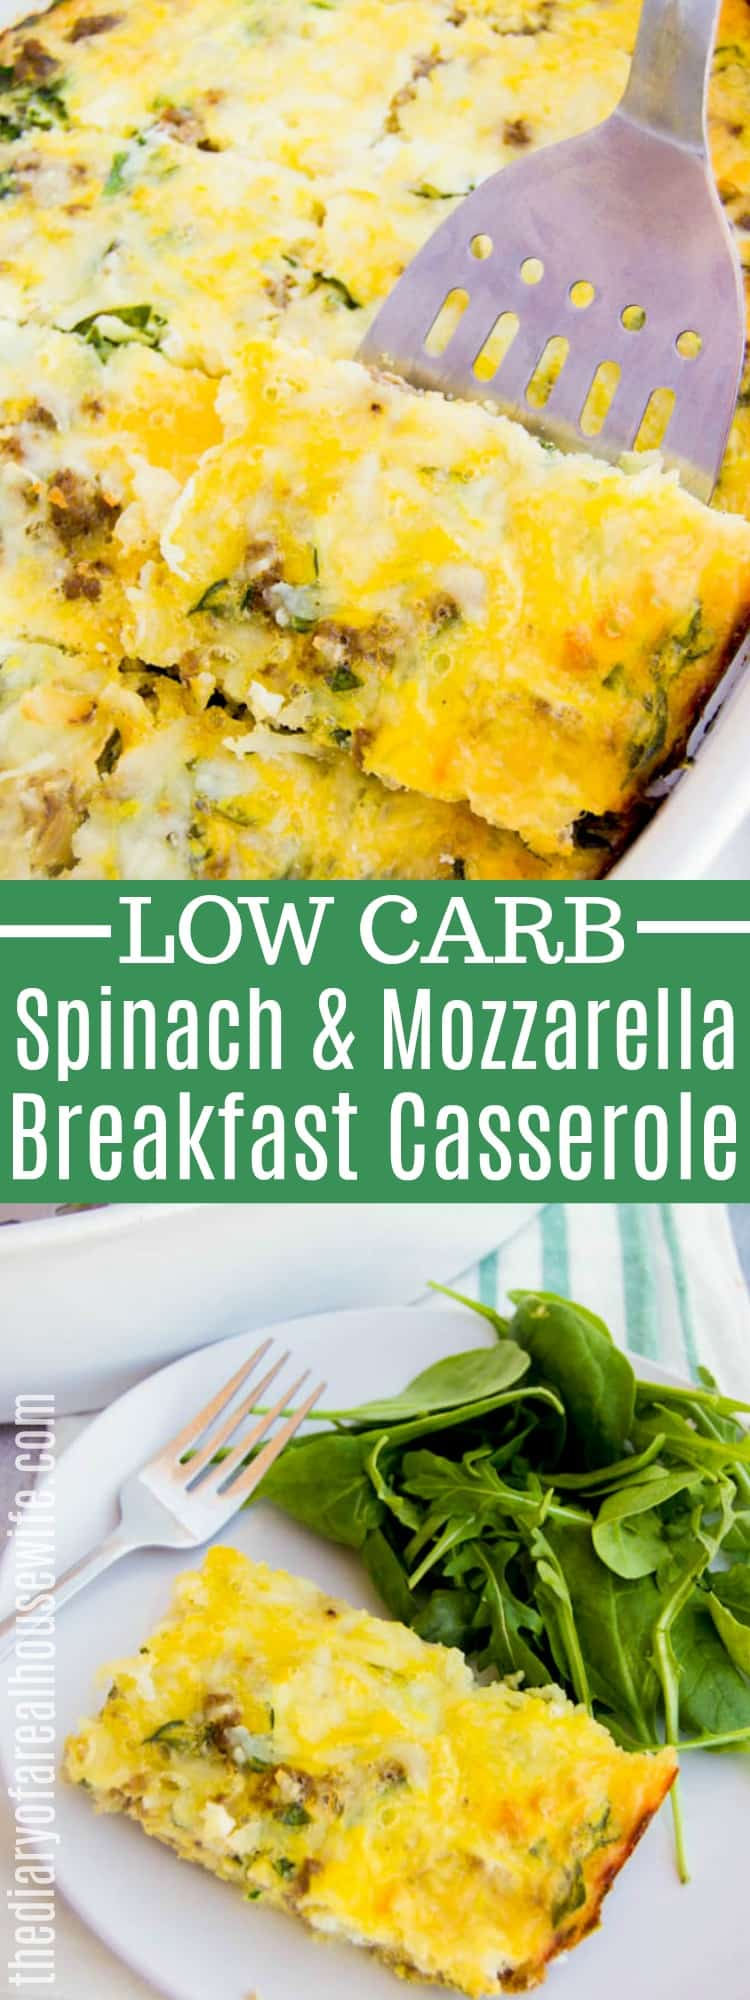 Spinach and Mozzarella Low Carb Breakfast Casserole